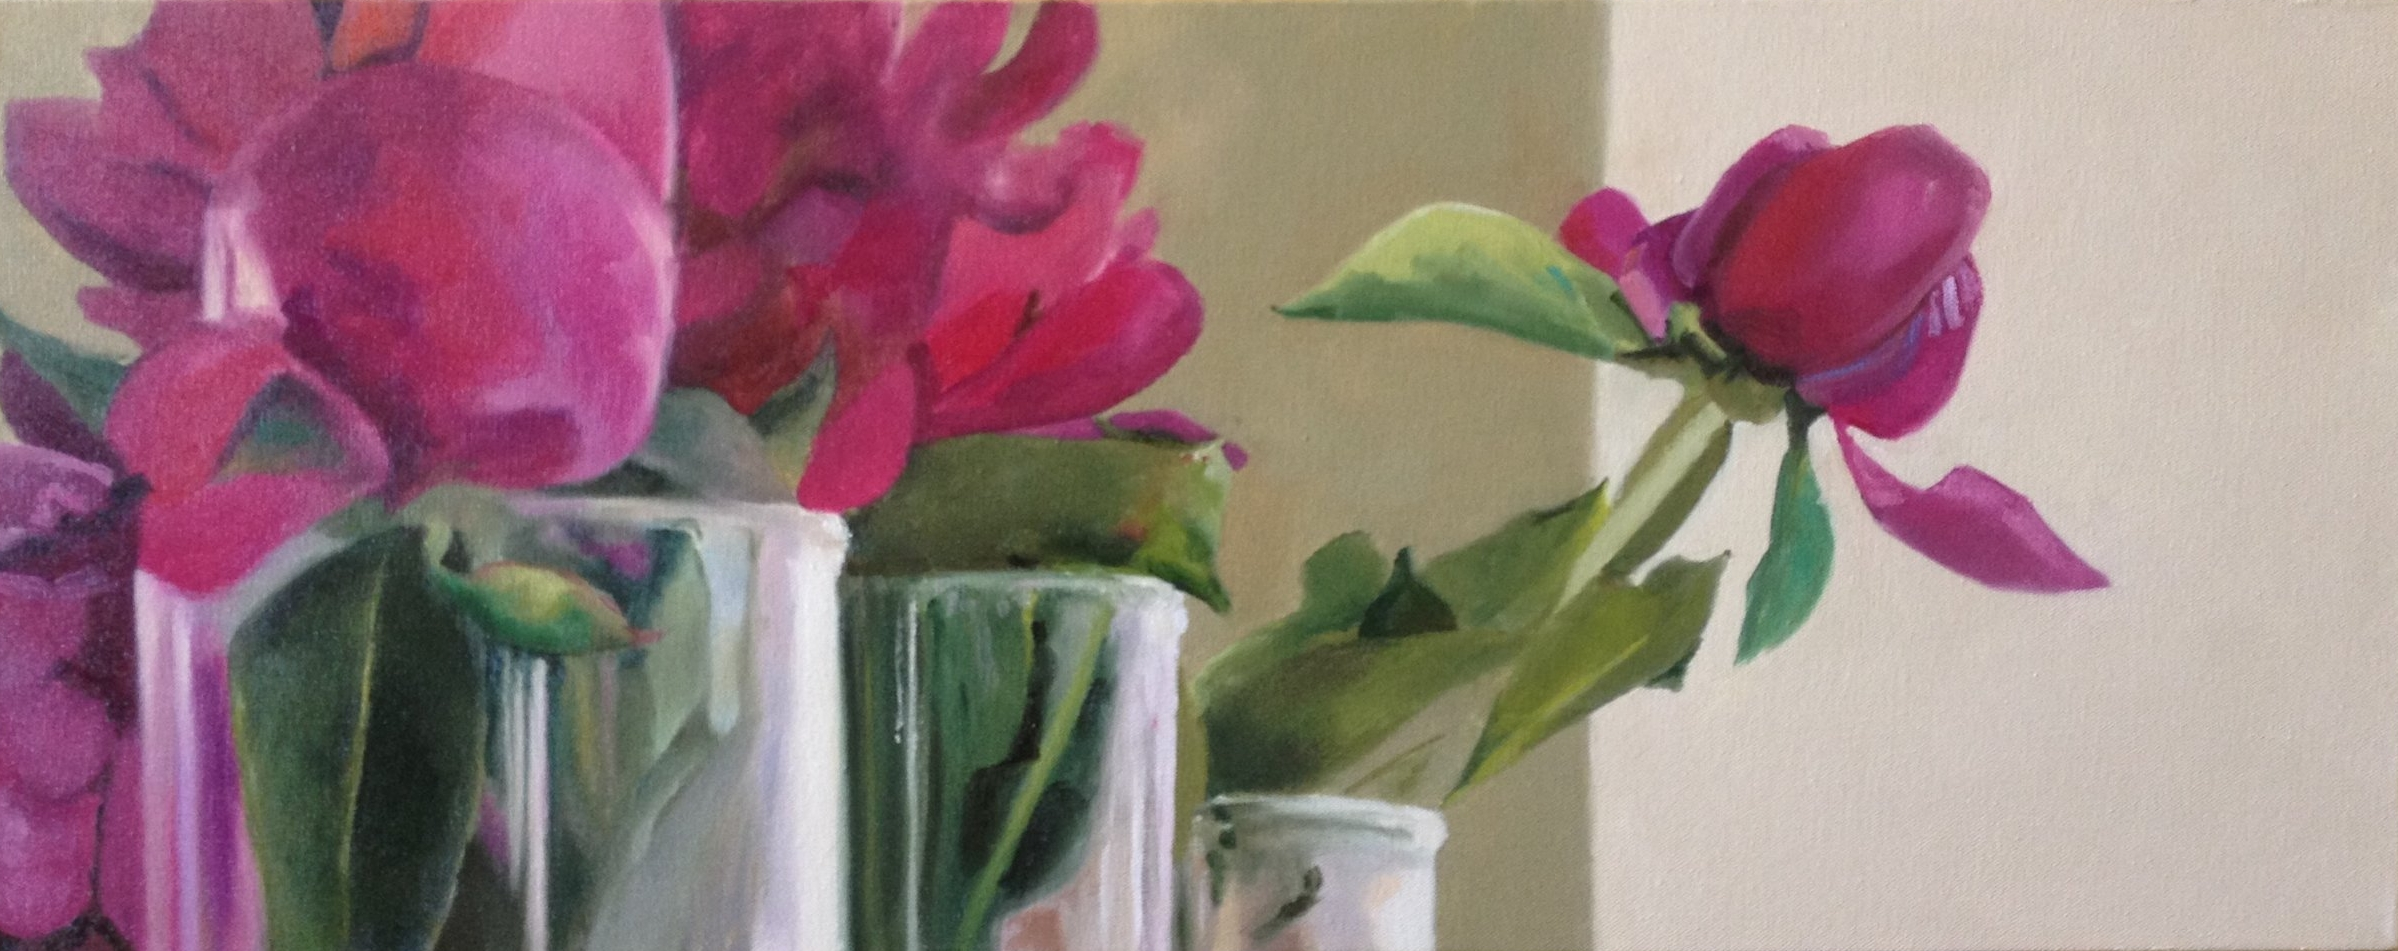 Peonies in Glass 2